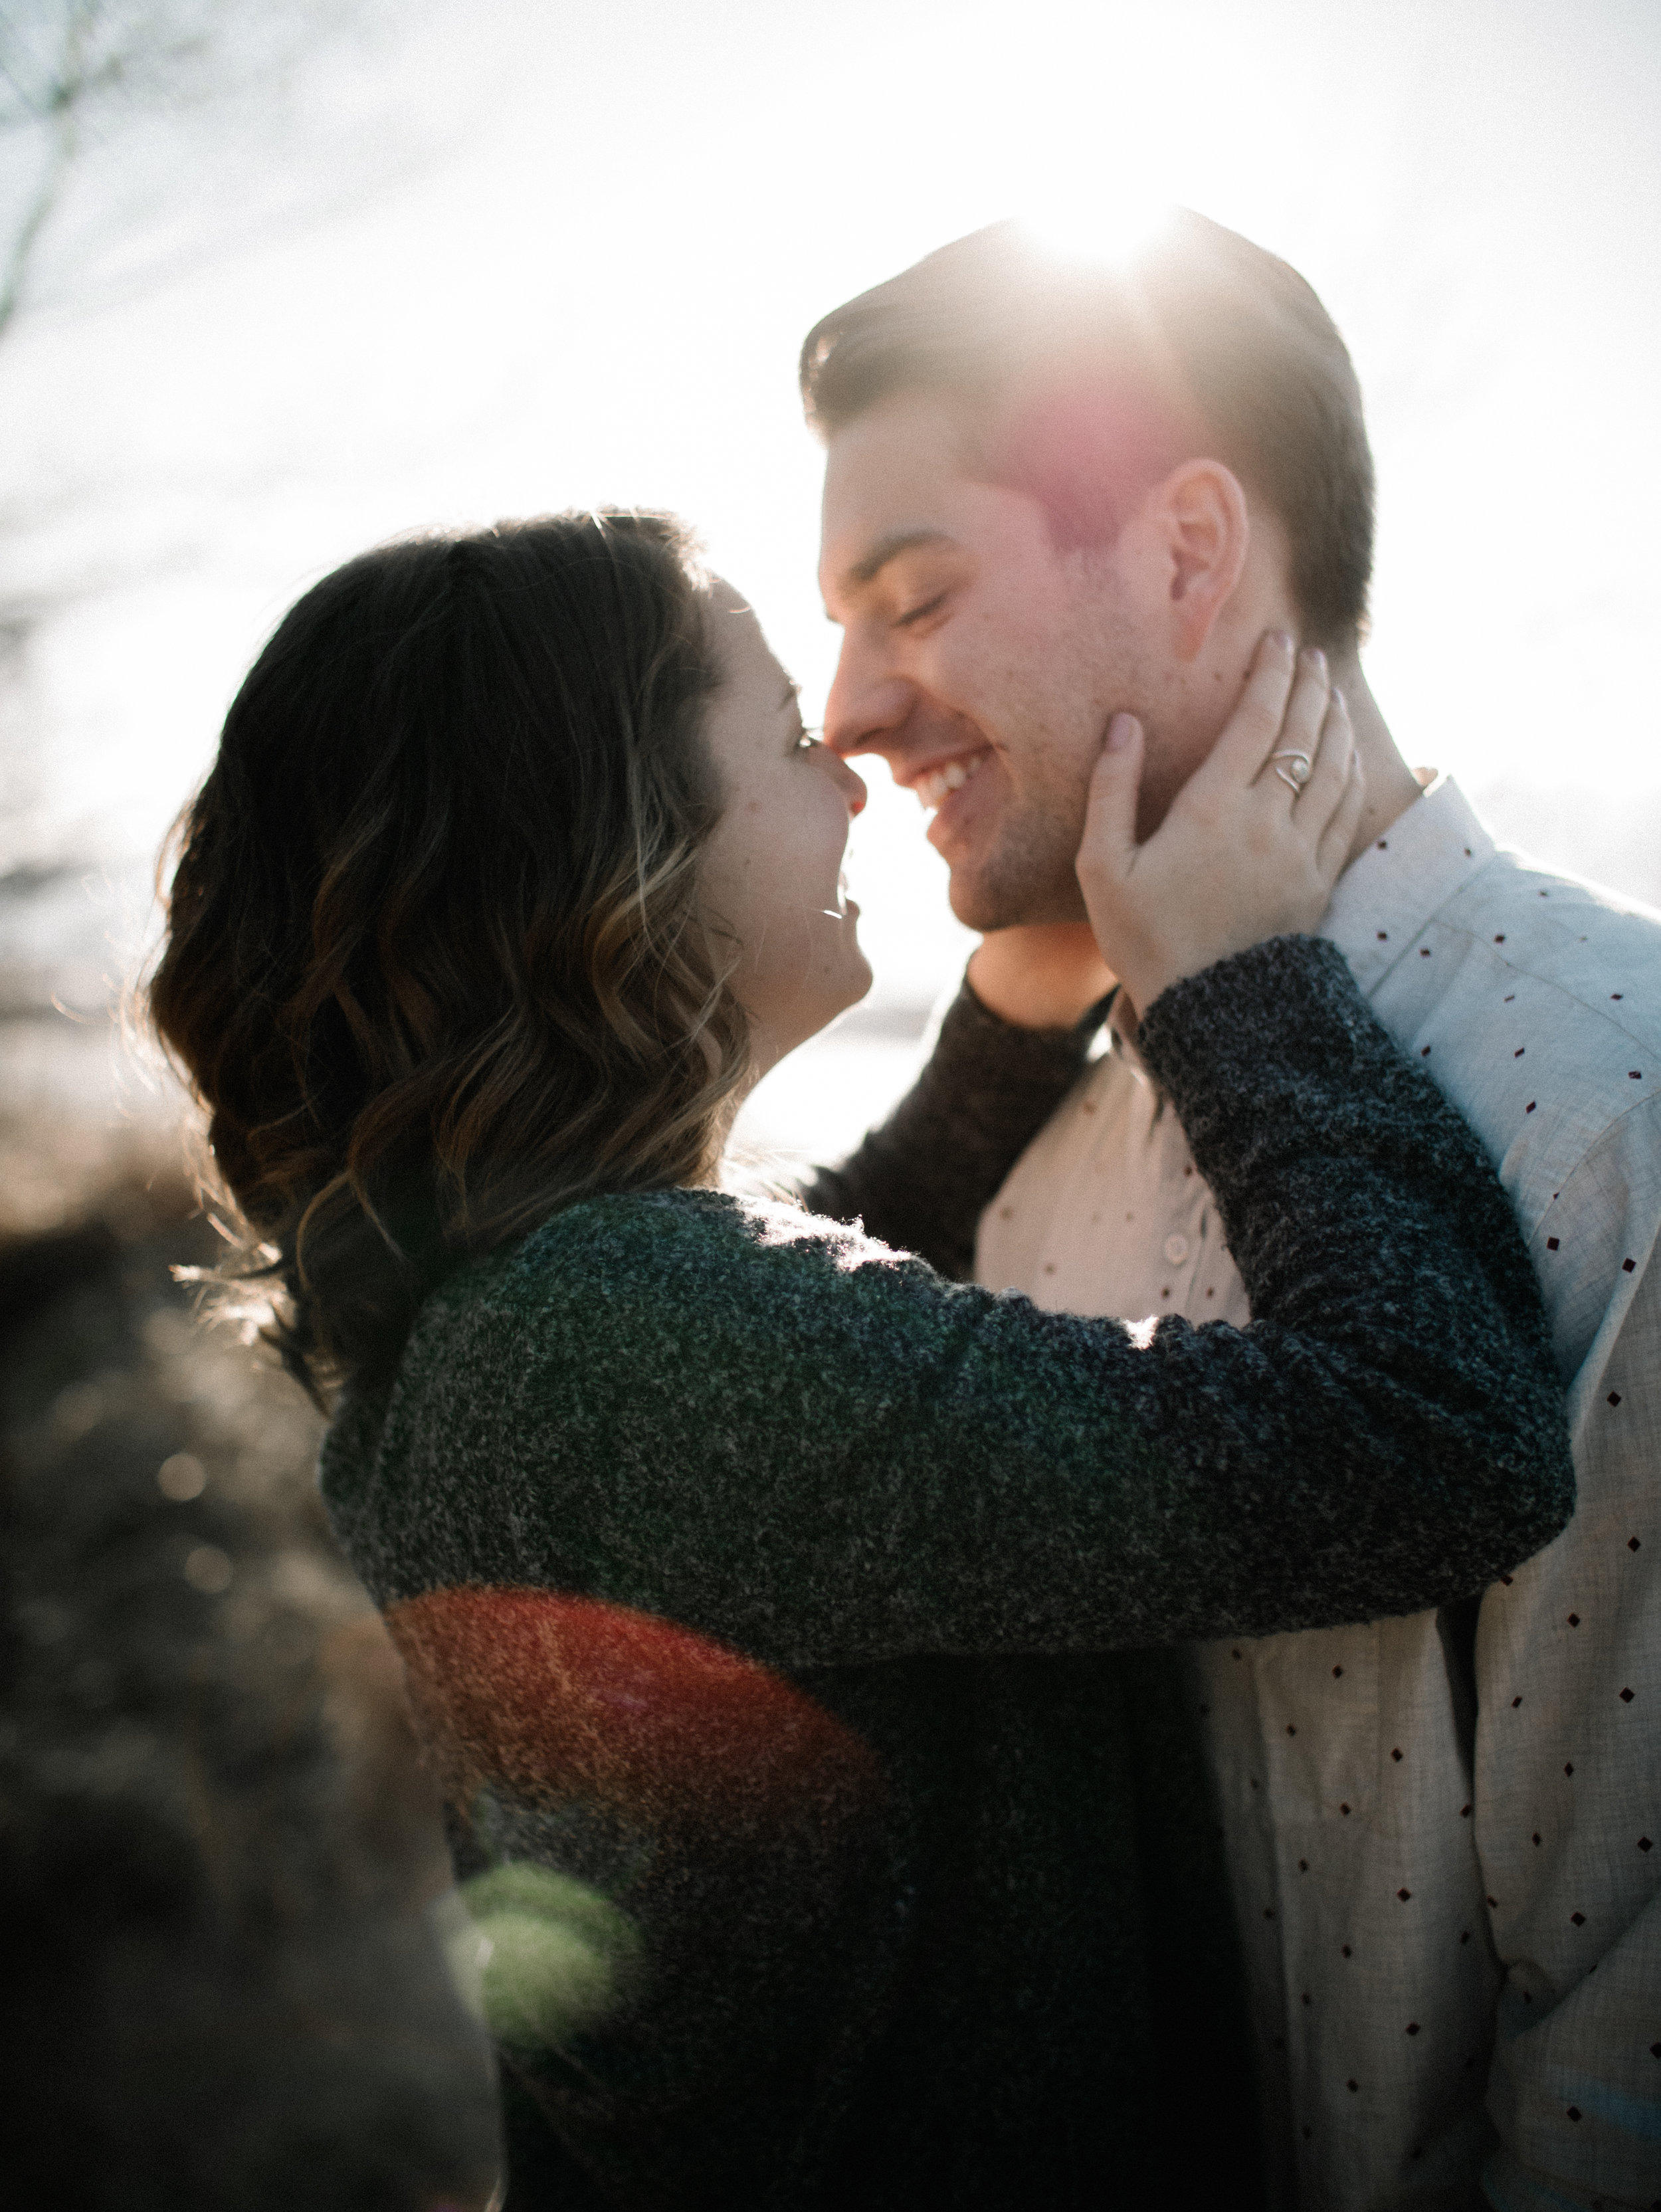 NOAH_PAIGE_LEHMAN_MCGOLDRICK_MICHIGAN_ENGAGEMENT_PHOTOGRAPHY_0048.jpg